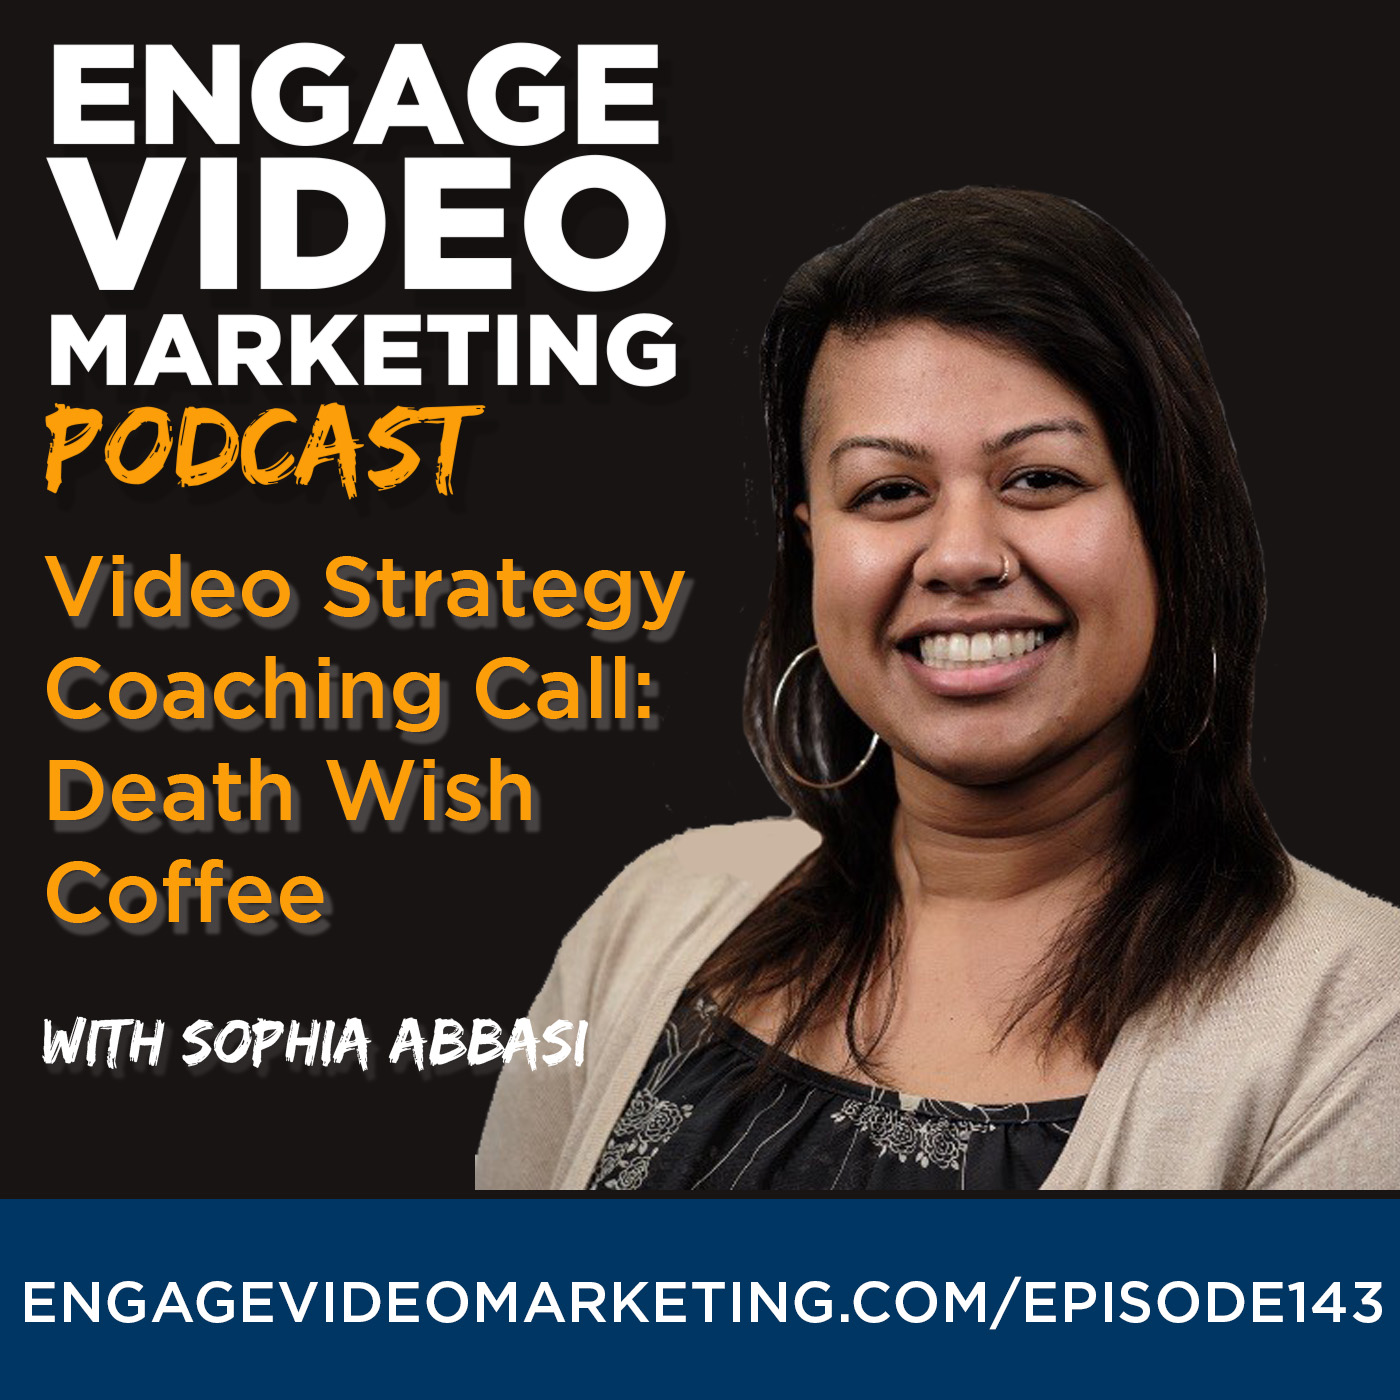 Video Strategy Coaching Call with Sophia Abbasi from Death Wish Coffee